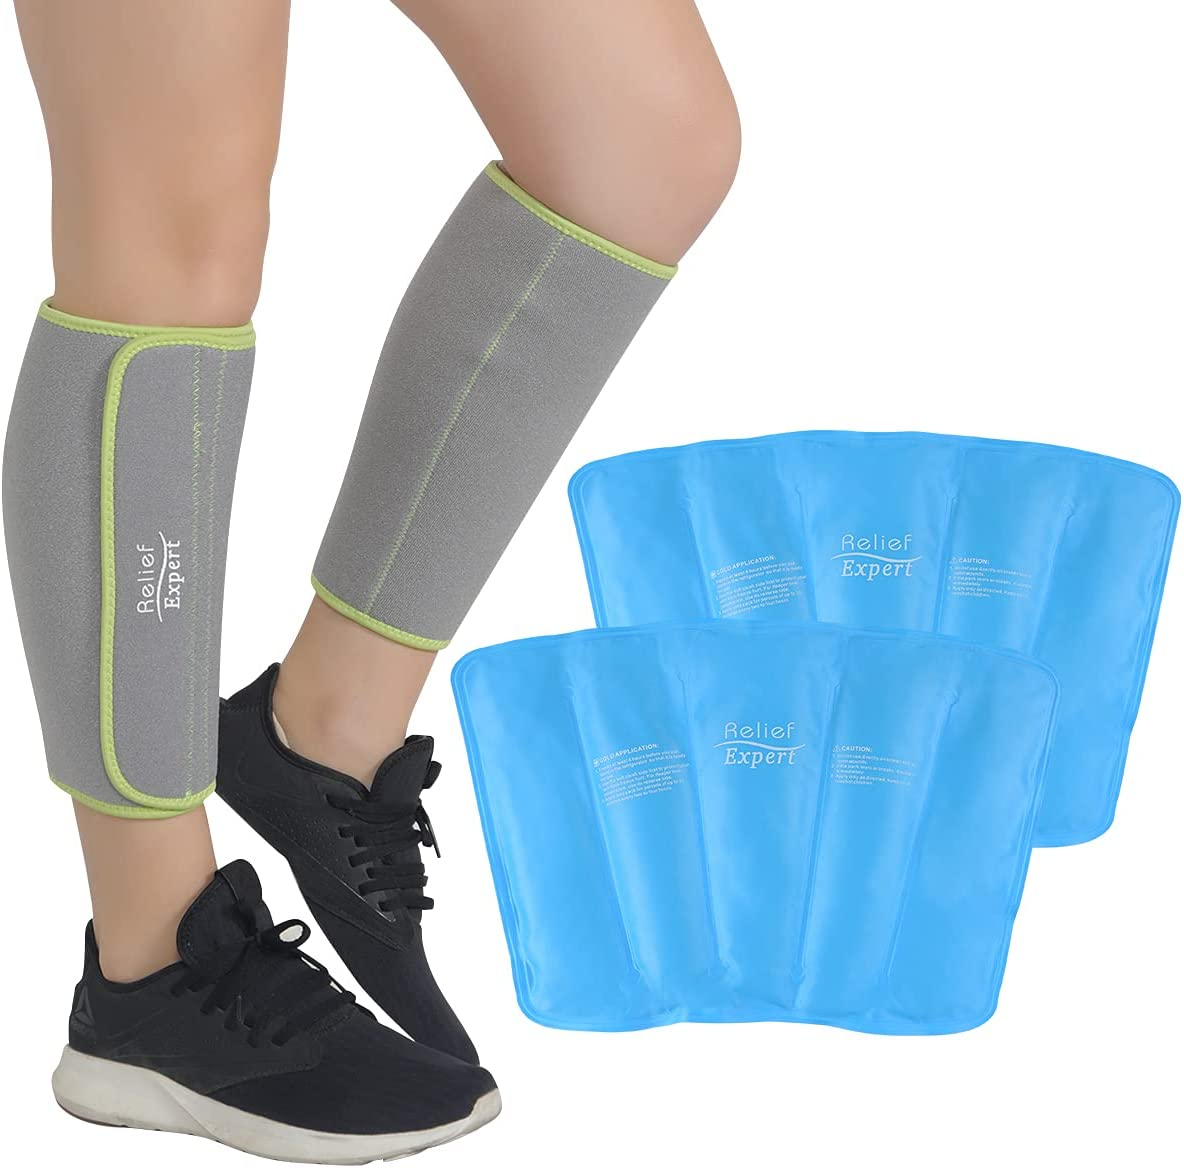 Relief Max 55% OFF Expert Shin Ice Packs for Cold Pain Leg Splints Popular product C